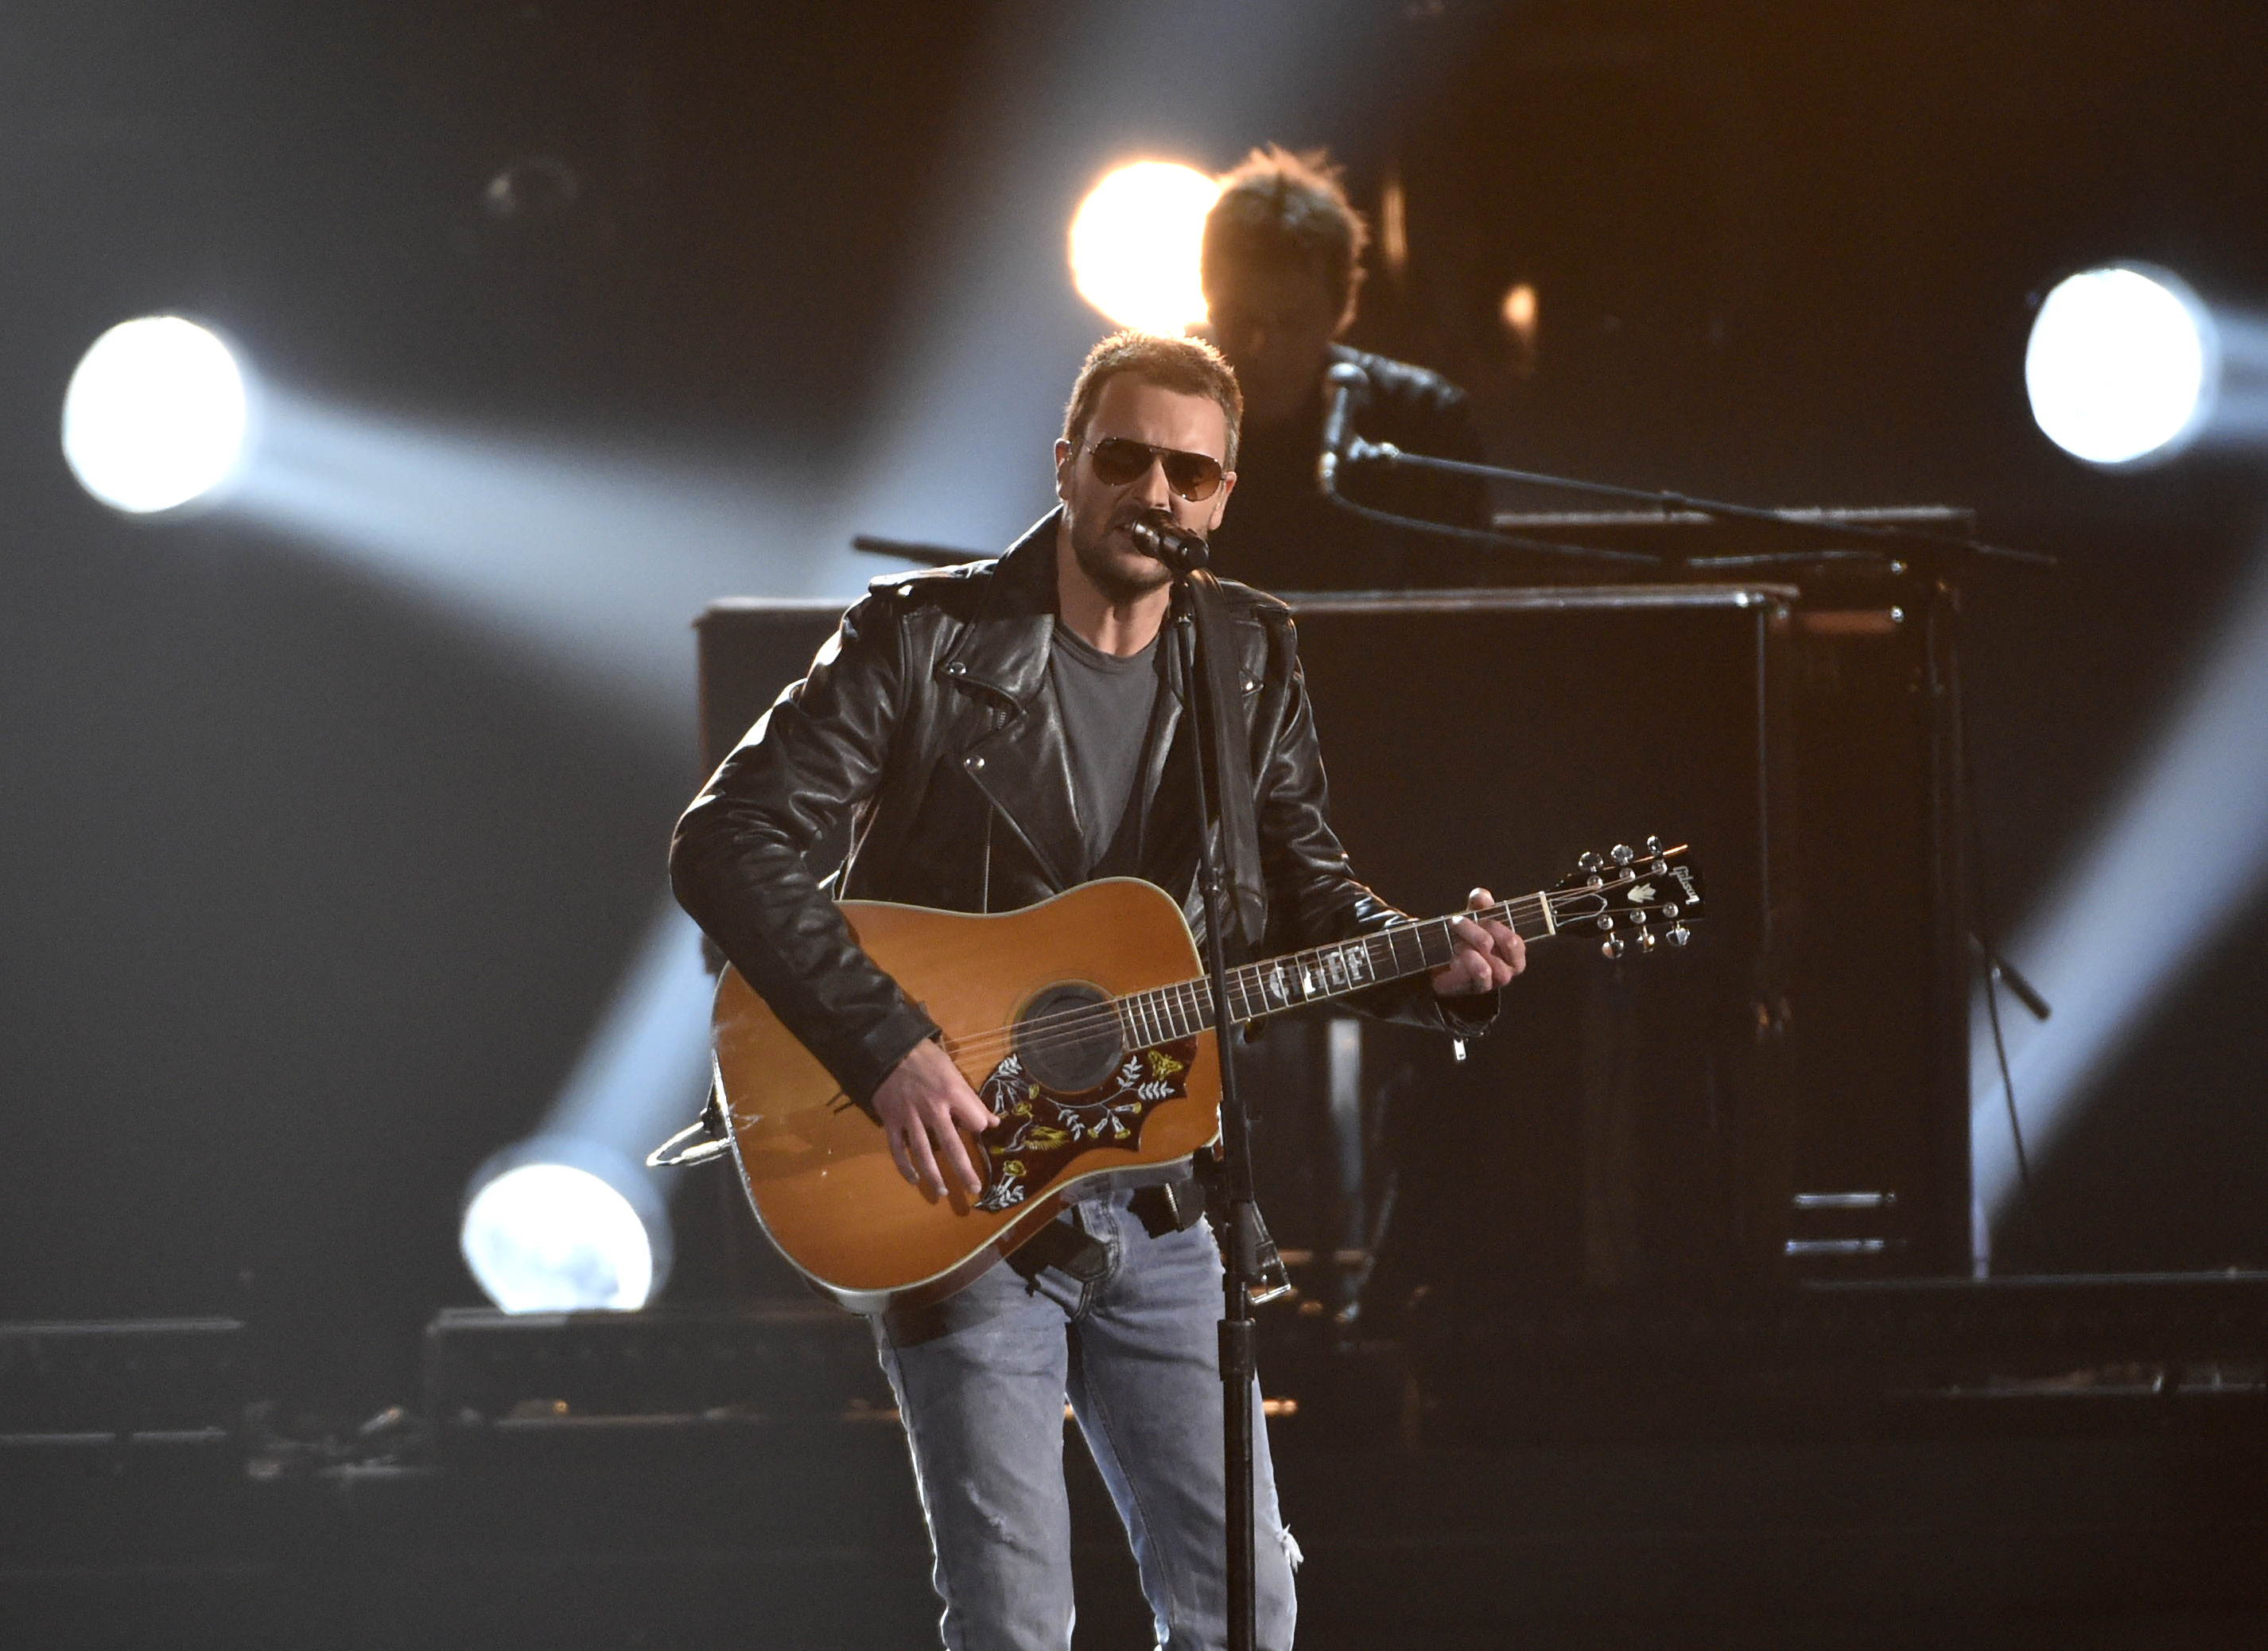 FILE - In this Nov. 4, 2015, file photo, Eric Church performs at the 49th annual CMA Awards at the Bridgestone Arena in Nashville, Tenn. Church and Chris Stapleton lead the early nominees for the 51st annual Academy of Country Music Awards with three nominations each, including male vocalist and album of the year. ACM Awards co-host Dierks Bentley announced the nominees Monday, Feb. 1, 2016, for six categories. (Photo by Chris Pizzello/Invision/AP, File)